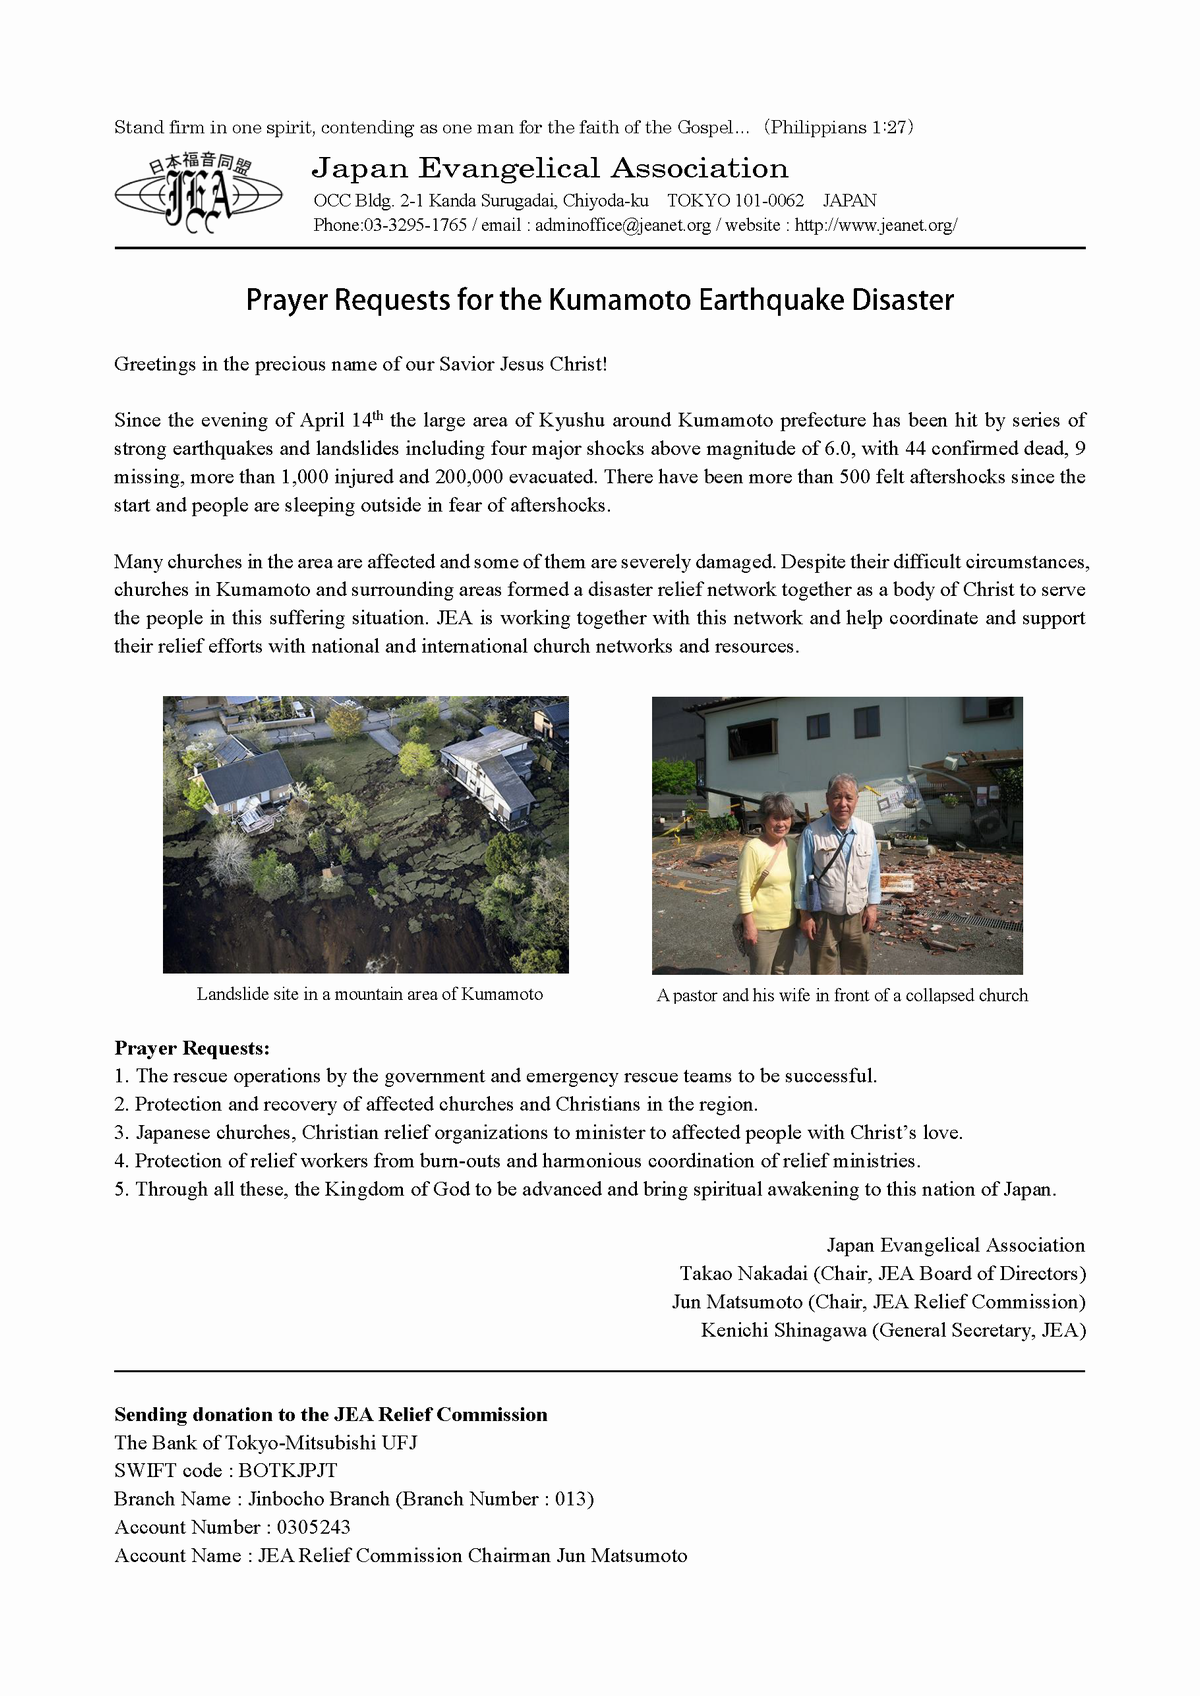 Report and Prayer Requests for Kumamoto Earthquake Disaster_rev1s